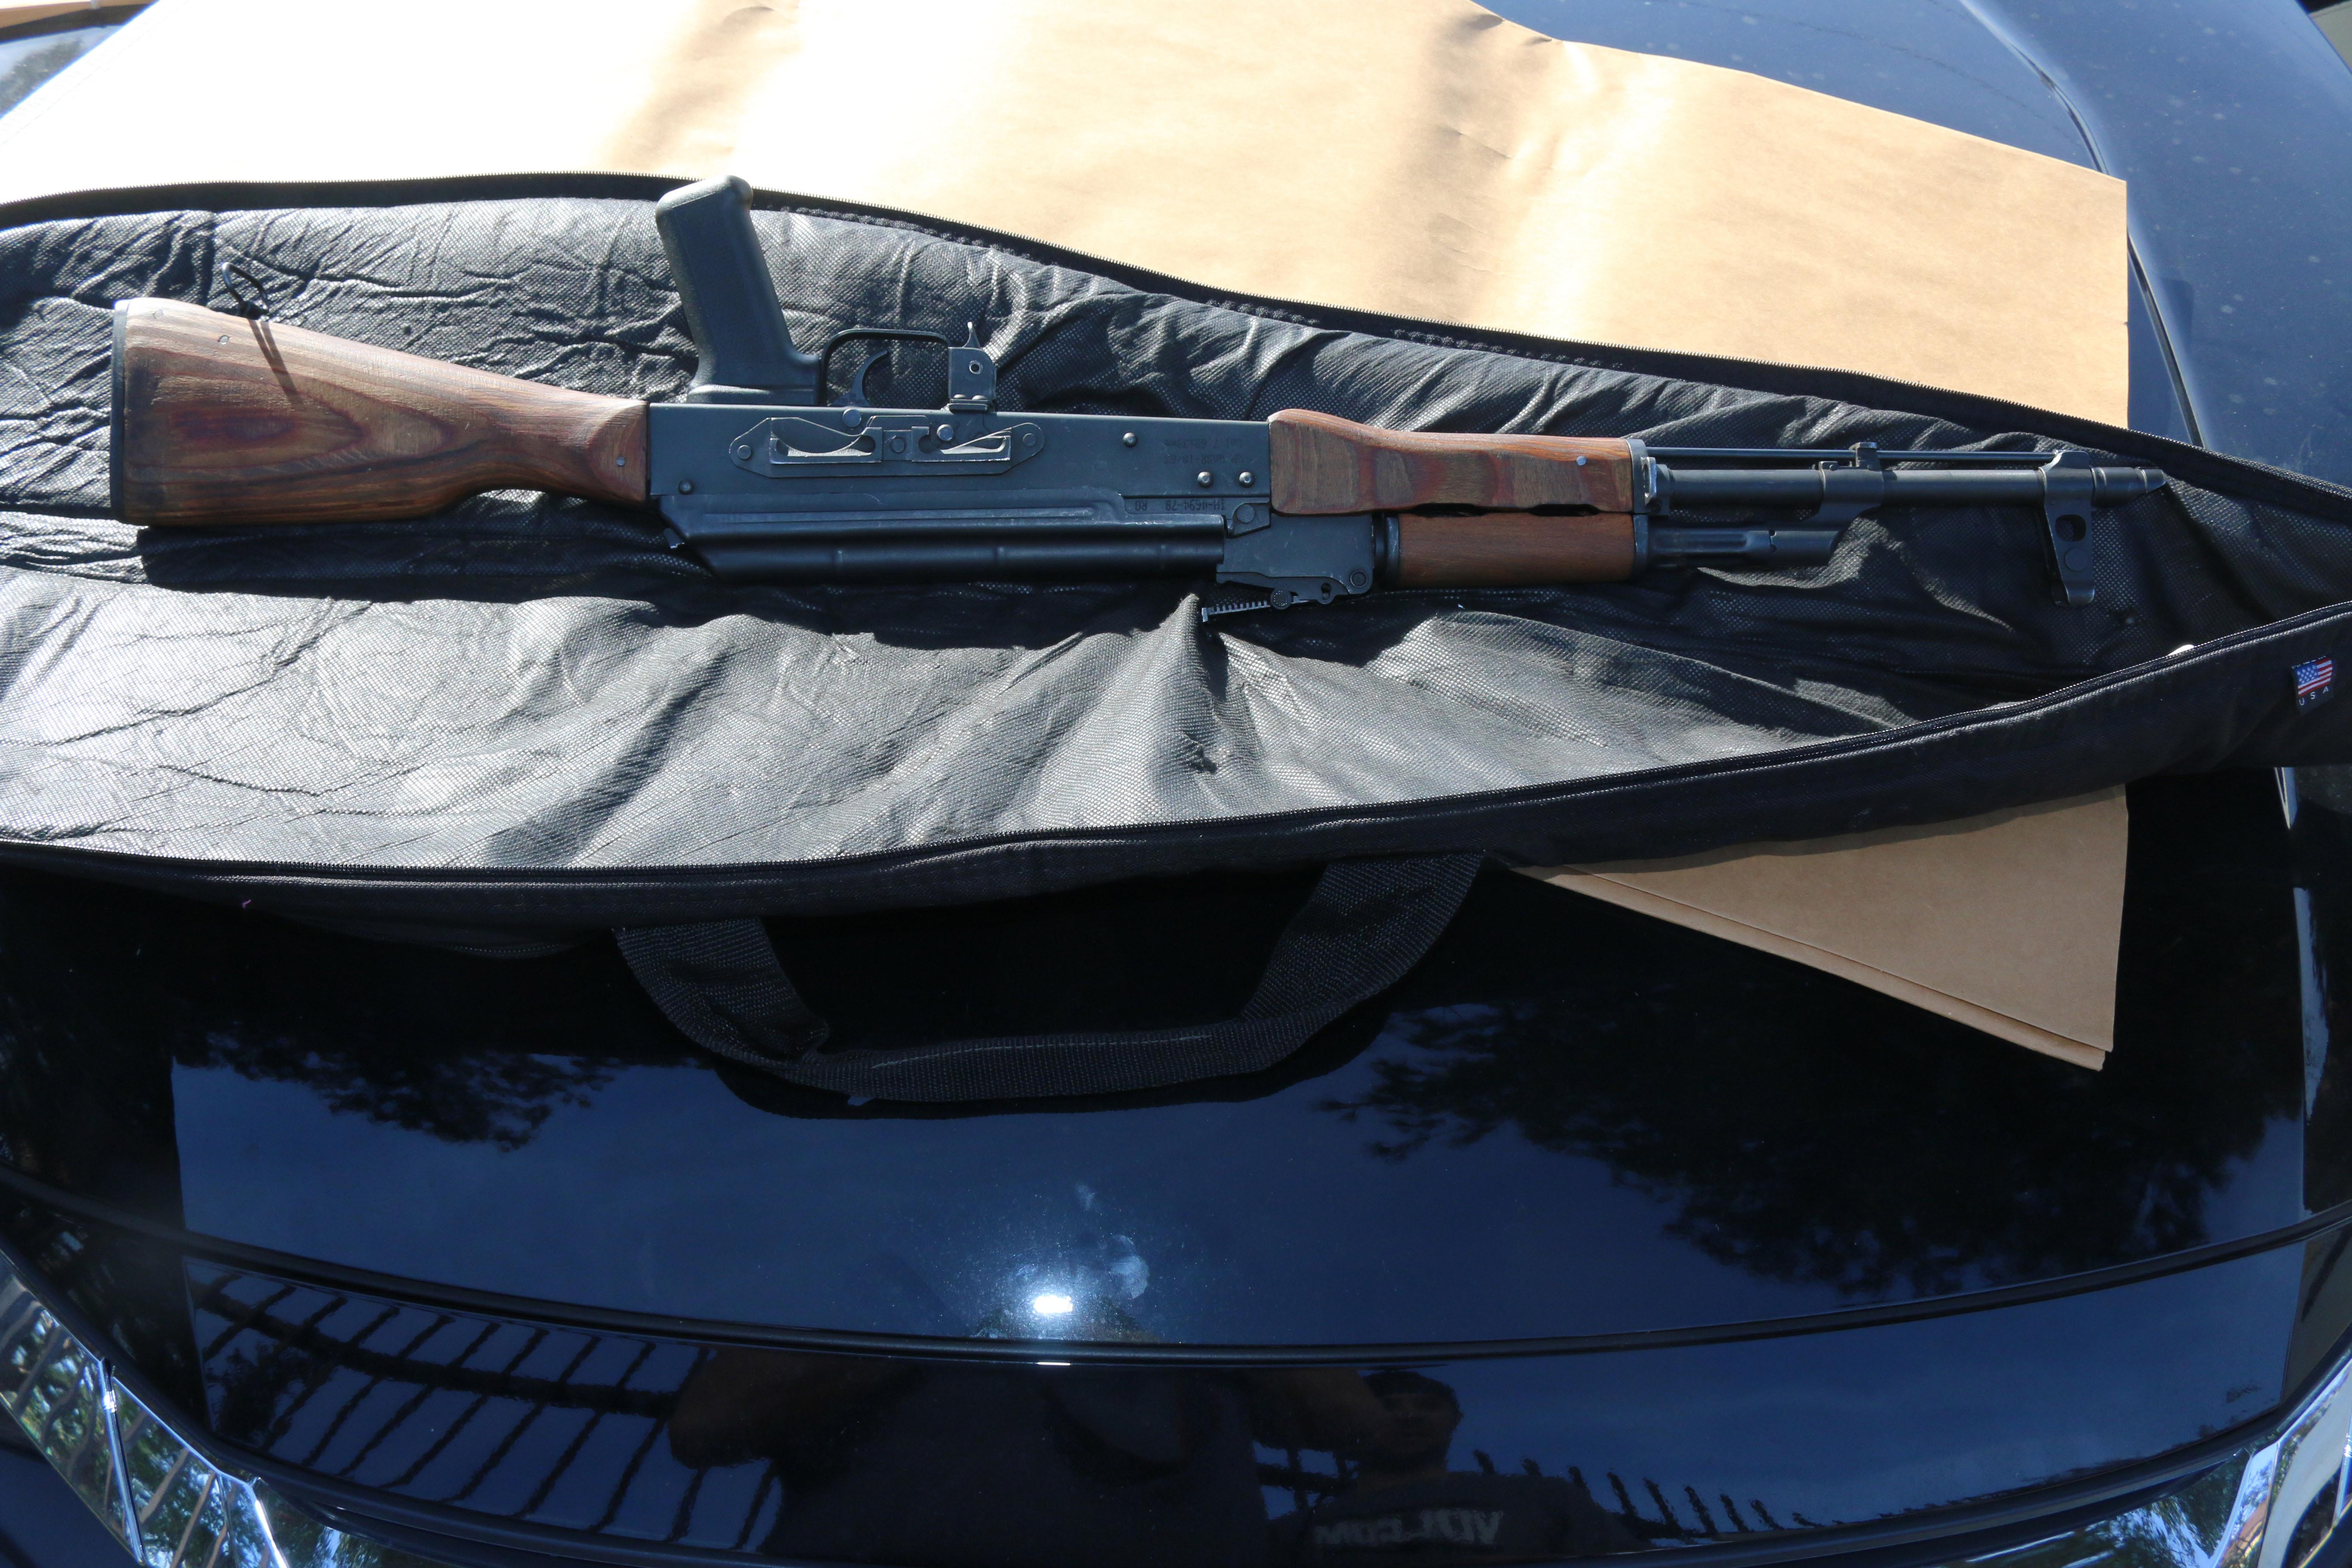 A rifle used in a double shooting near an Anaheim high school is seen in a photo released by police on Feb. 2, 2017.